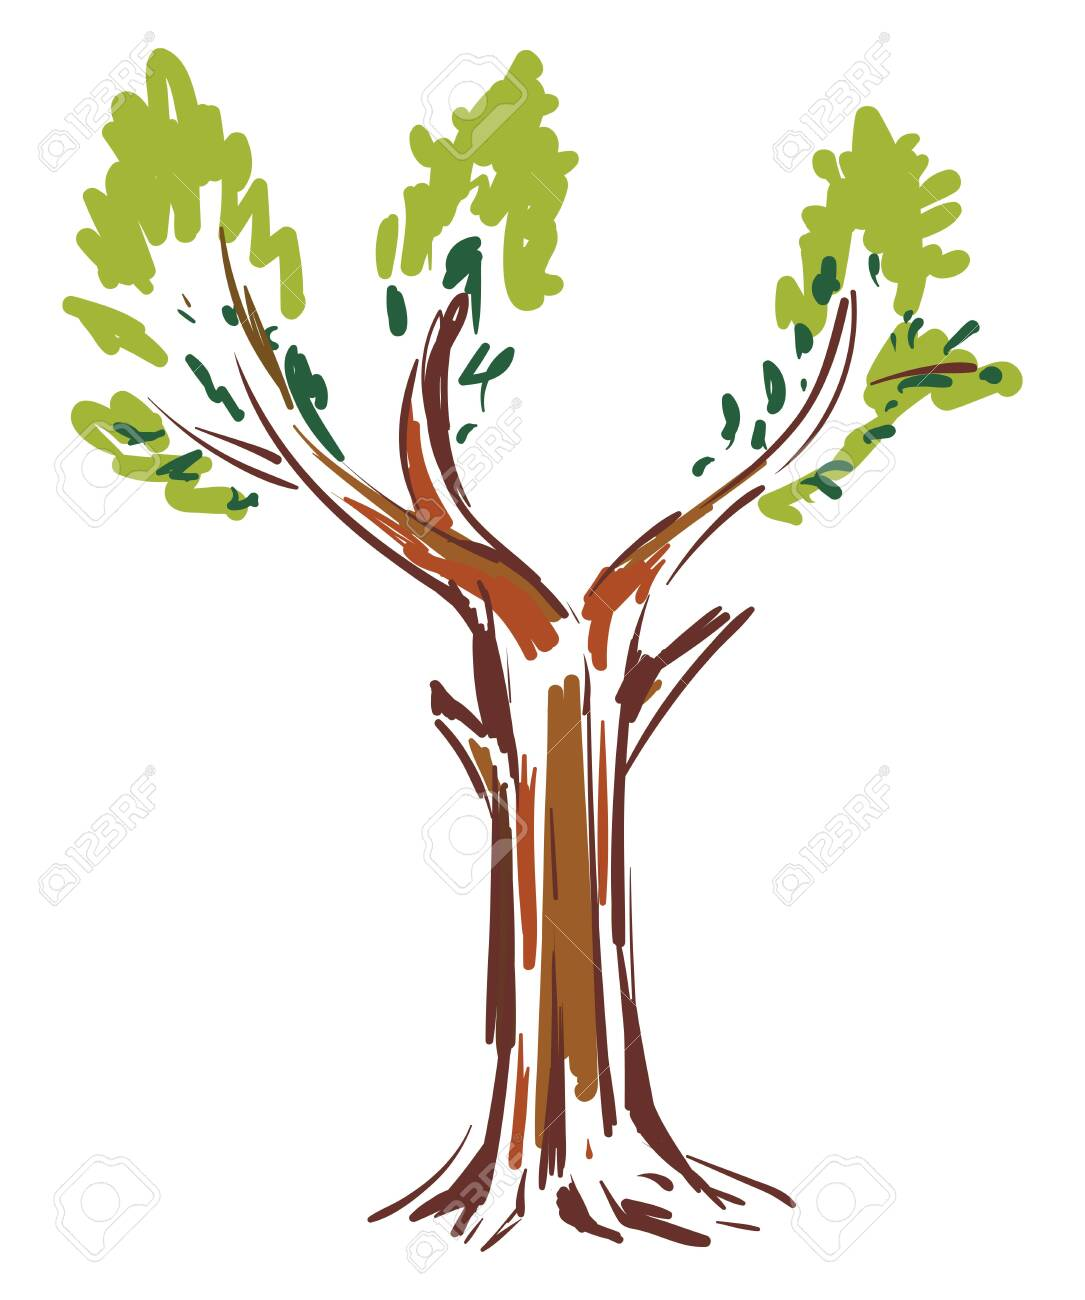 A Colorful Sketch Of A Big Tree With Green Leaves Vector Color Royalty Free Cliparts Vectors And Stock Illustration Image 132779865